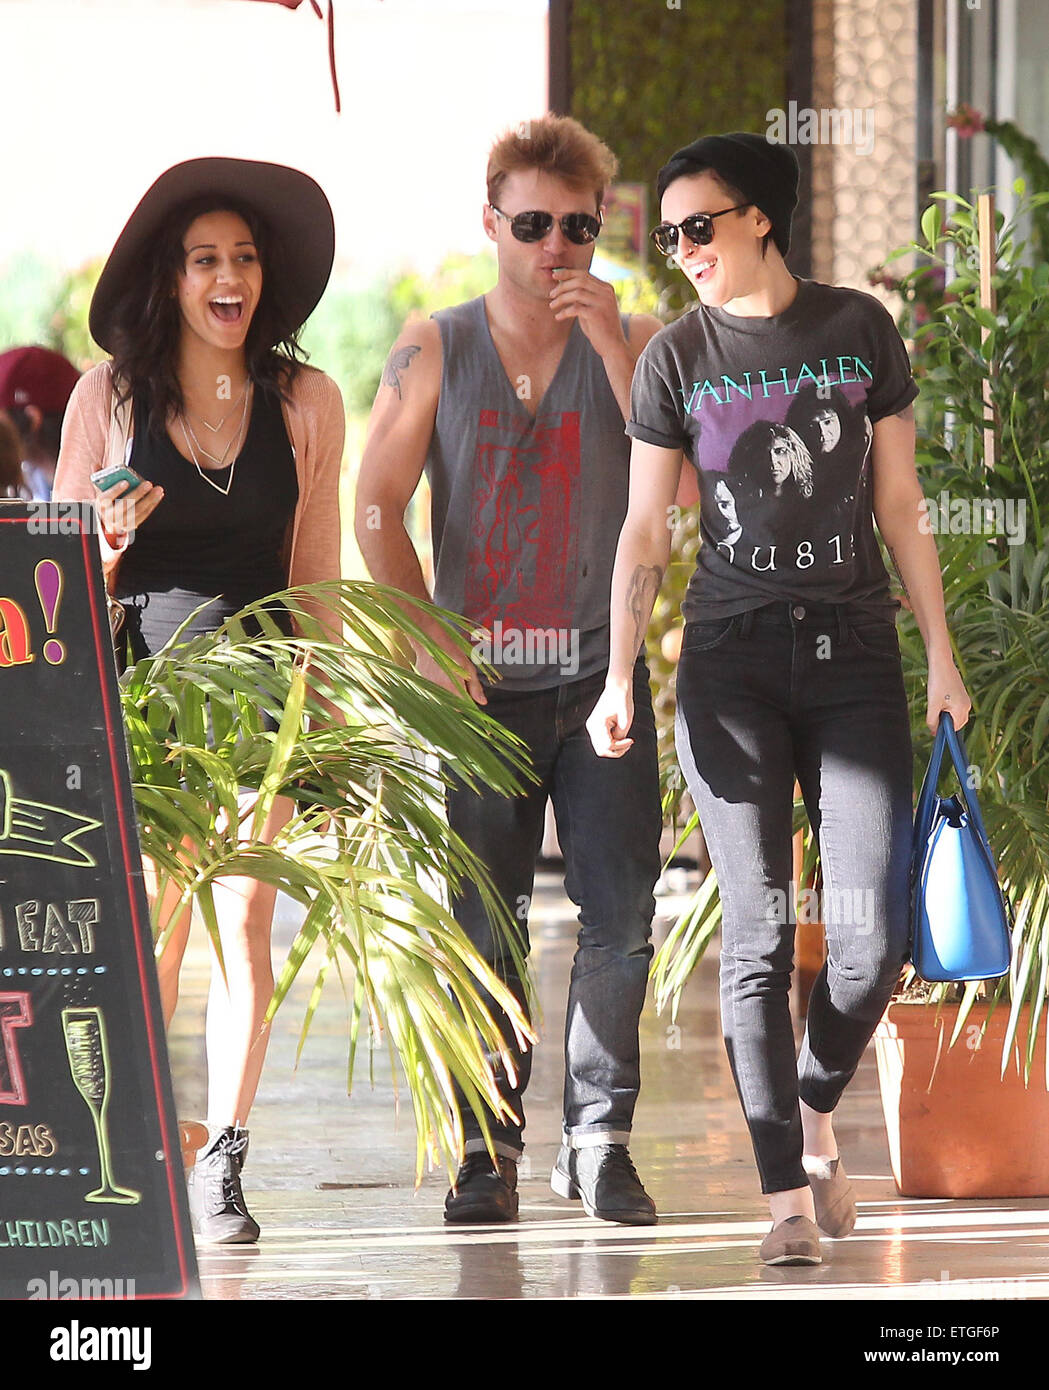 Black t shirt goes with - Rumer Willis In Black Jeans And Van Halen T Shirt Goes Shopping In Studio City Featuring Rumer Willis Where Los Angeles United States When 16 Feb 2015